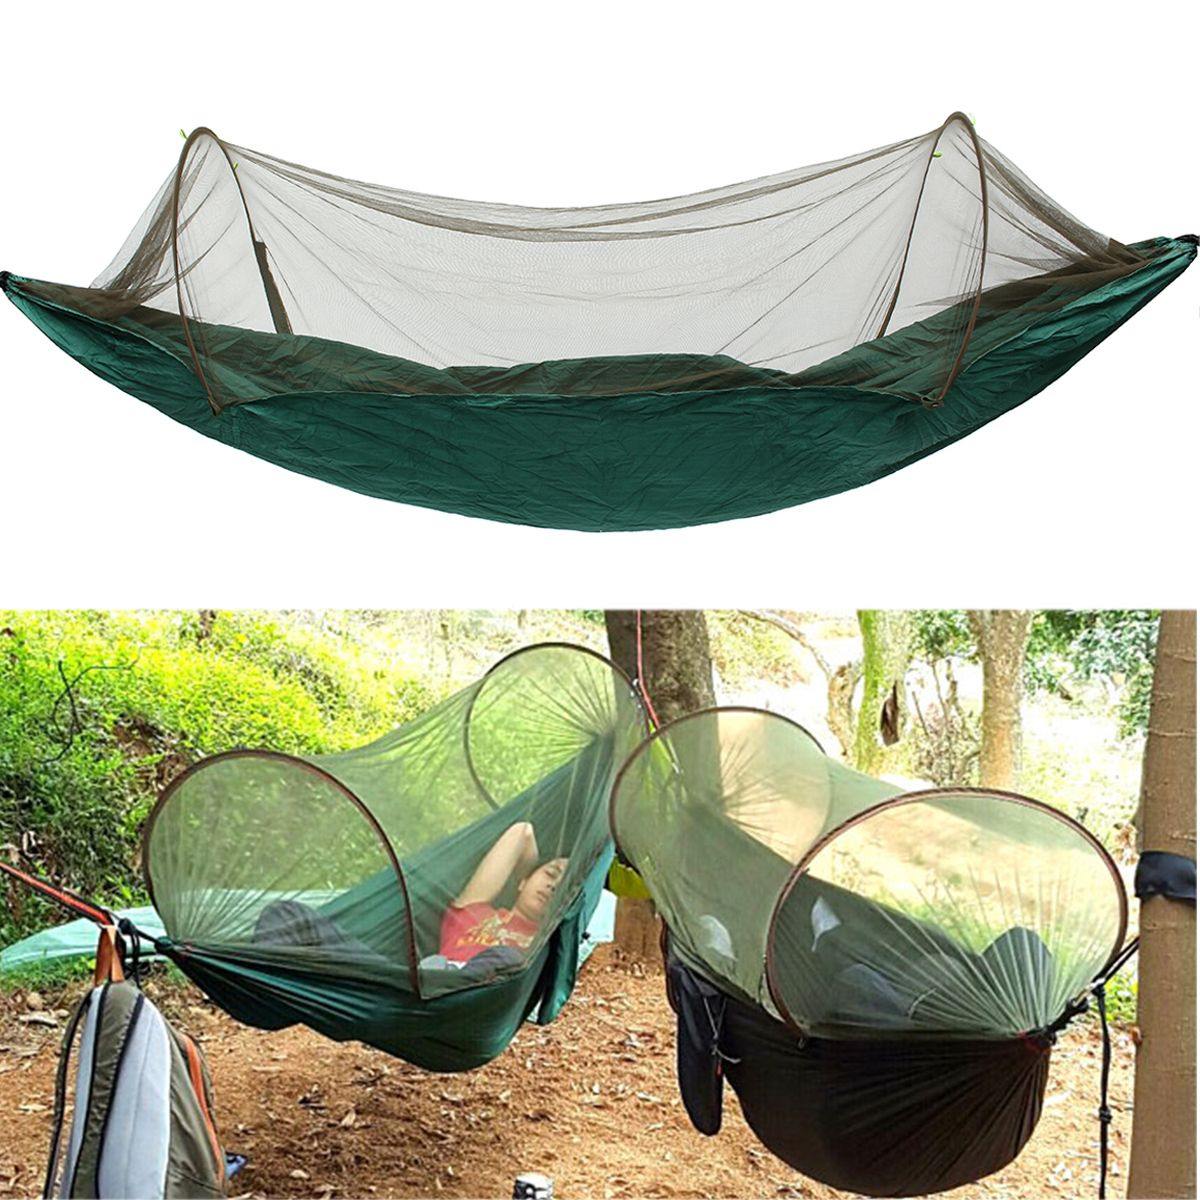 Us xcm portable outdoor camping hanging hammock